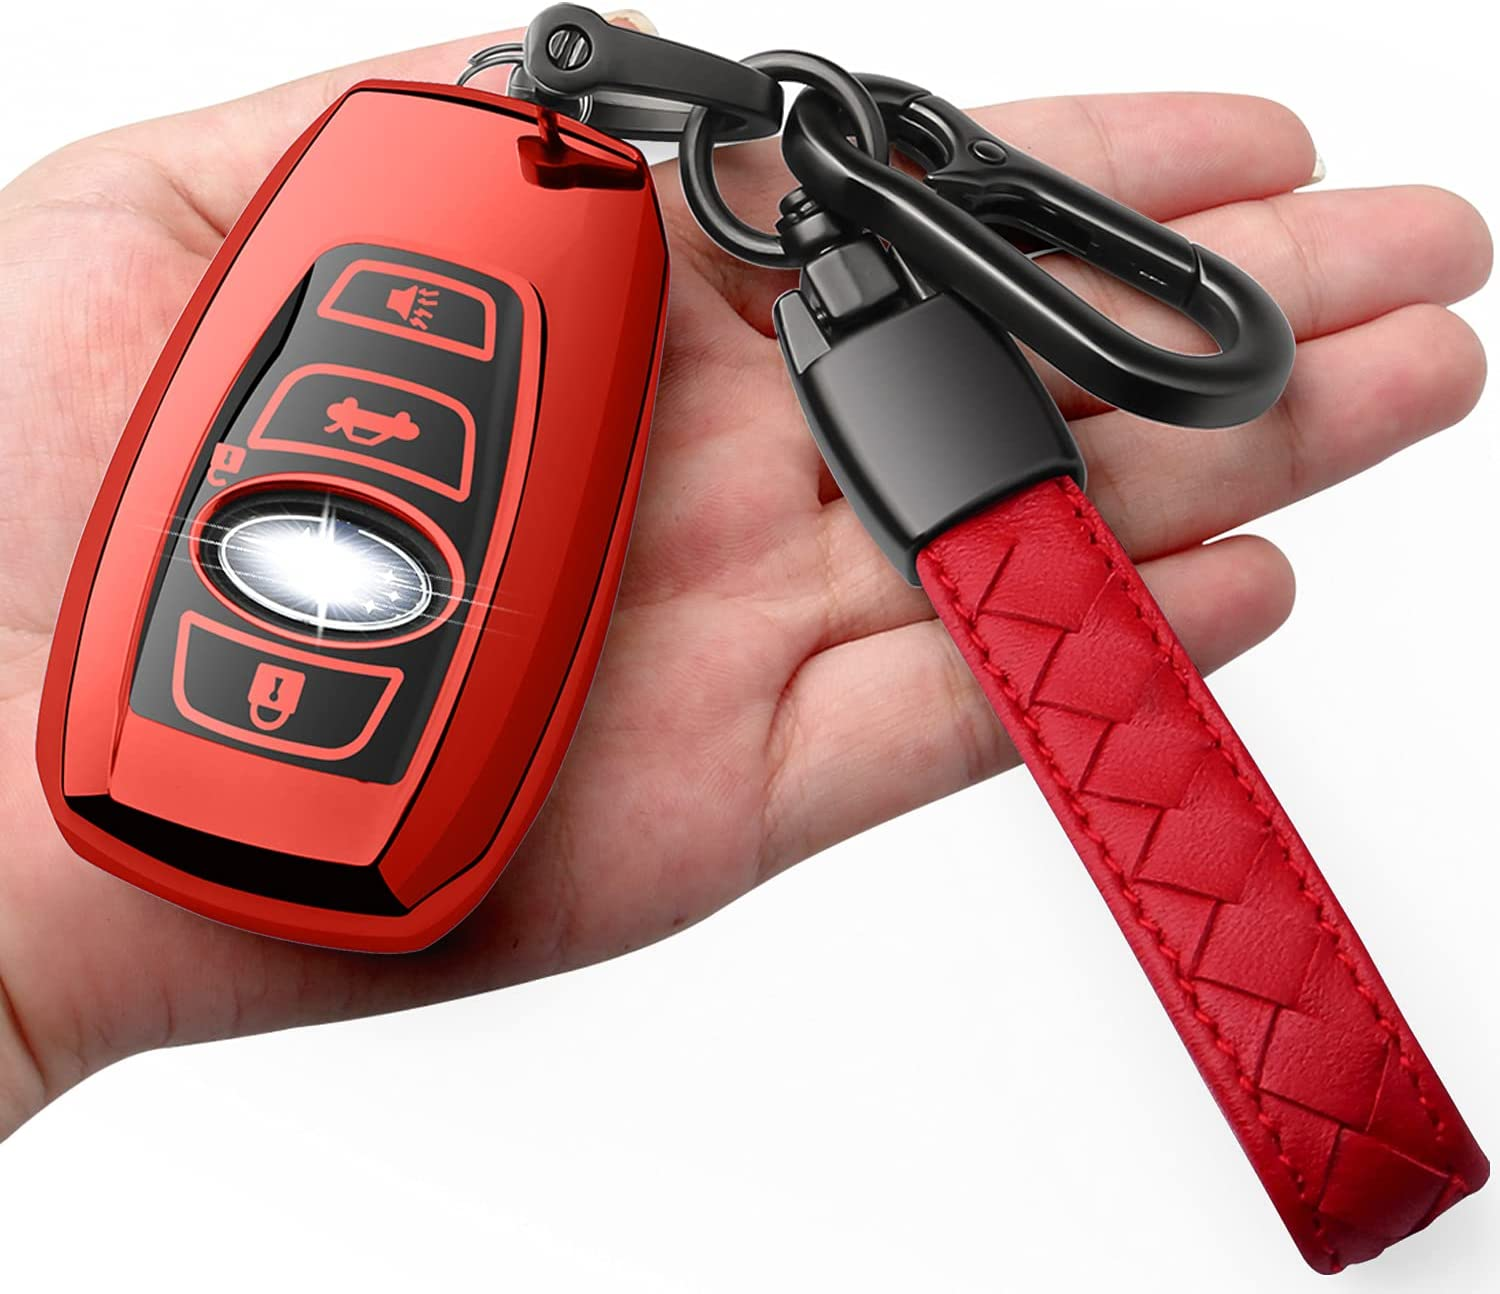 Autophone Max 44% Regular discount OFF for Subaru Key Fob Cover TP Leather With Soft Keychain